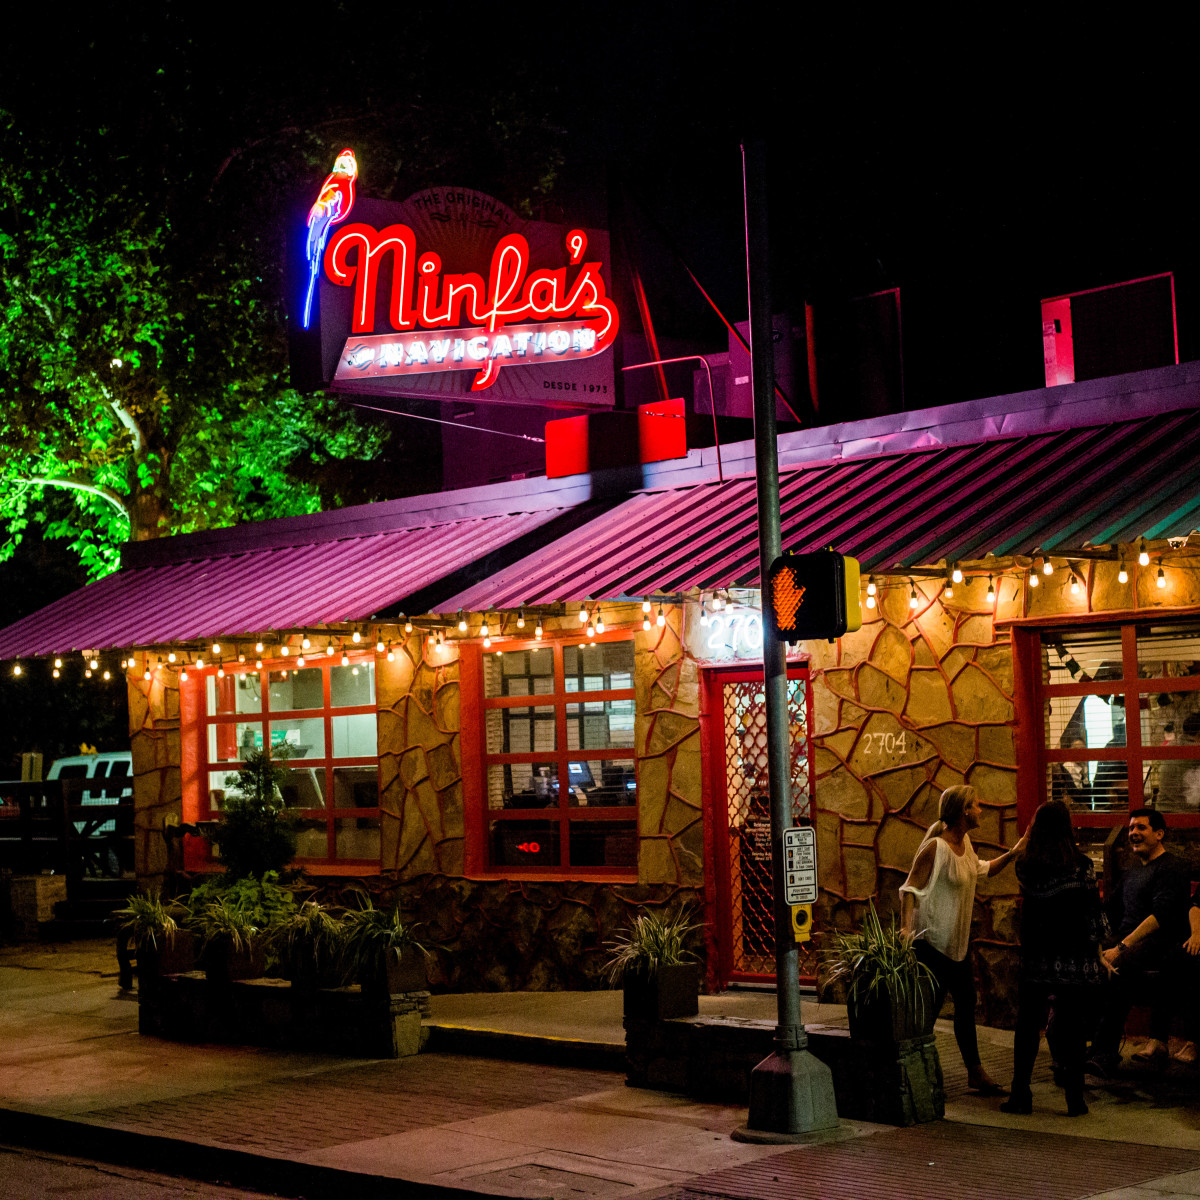 Ninfa's exterior night